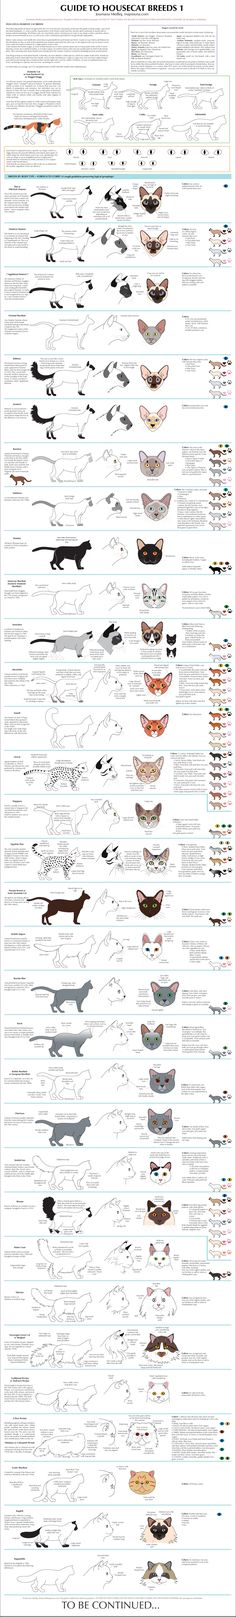 Guide to Housecat Breeds 1 by `majnouna on deviantART